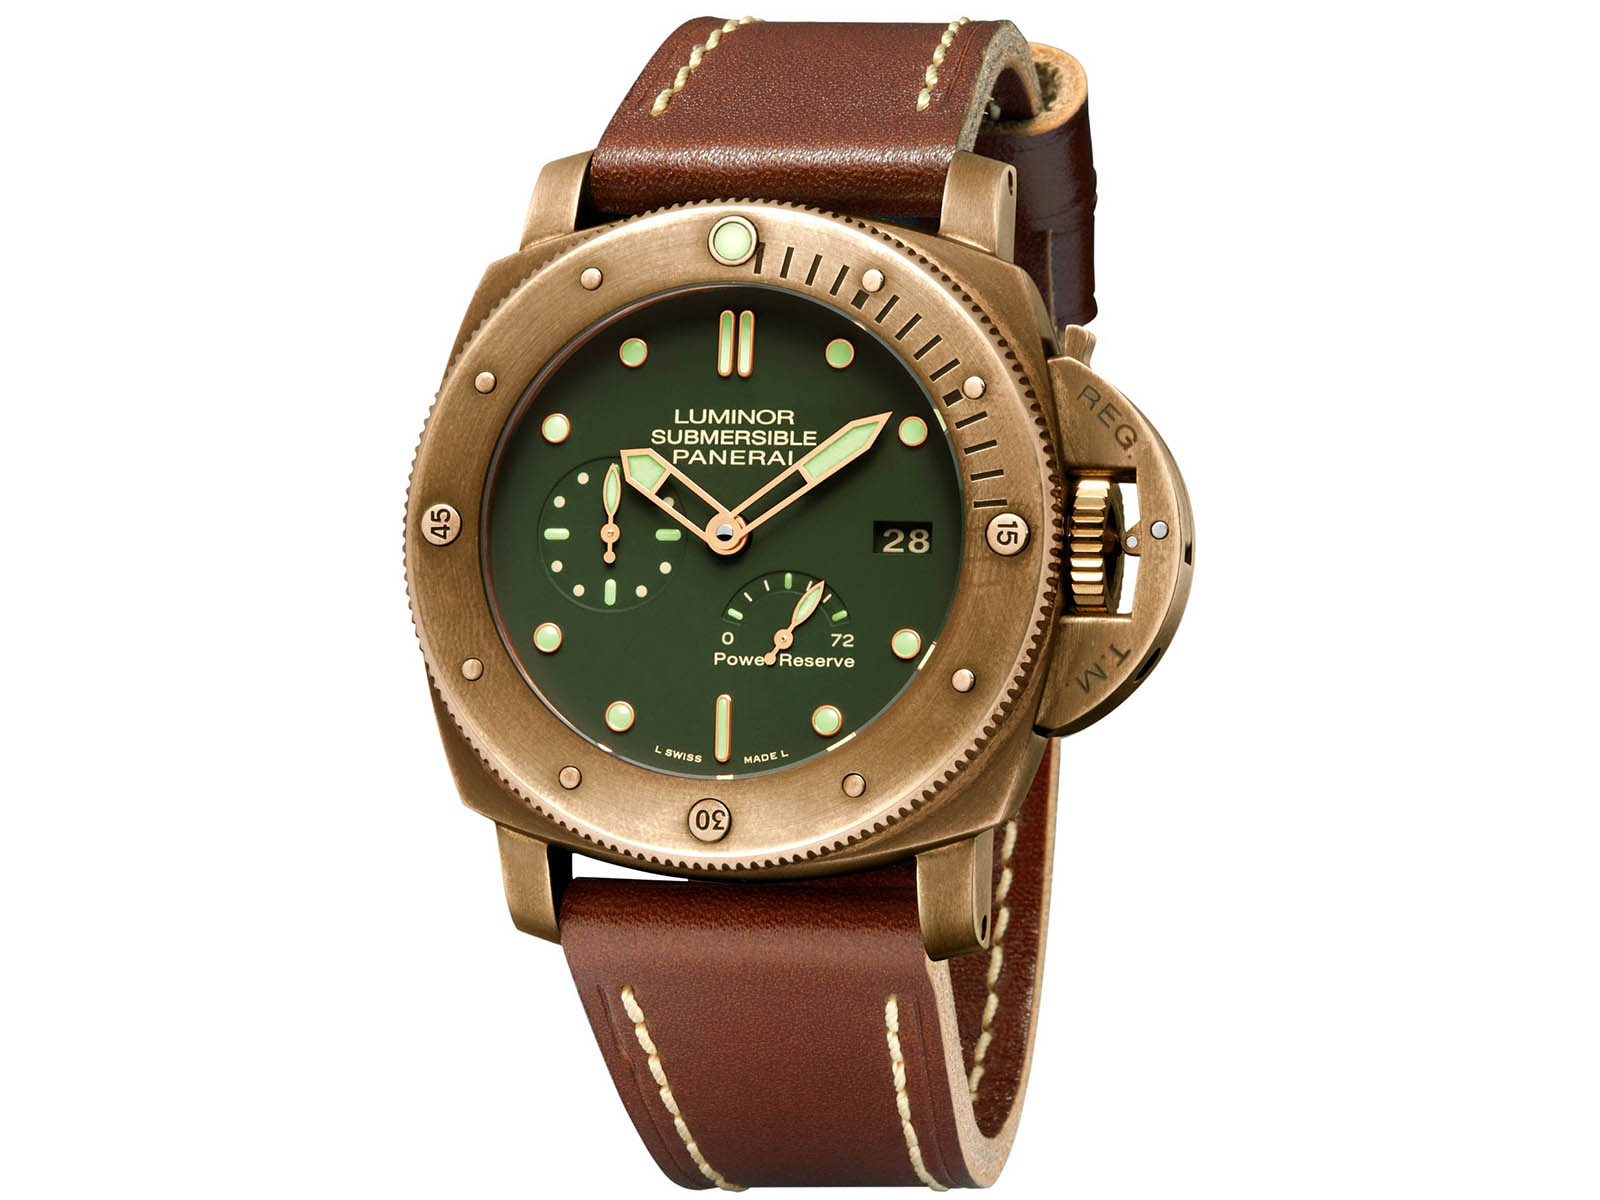 pam00507-panerai-luminor-submersible-1950-green-dial-2.jpg